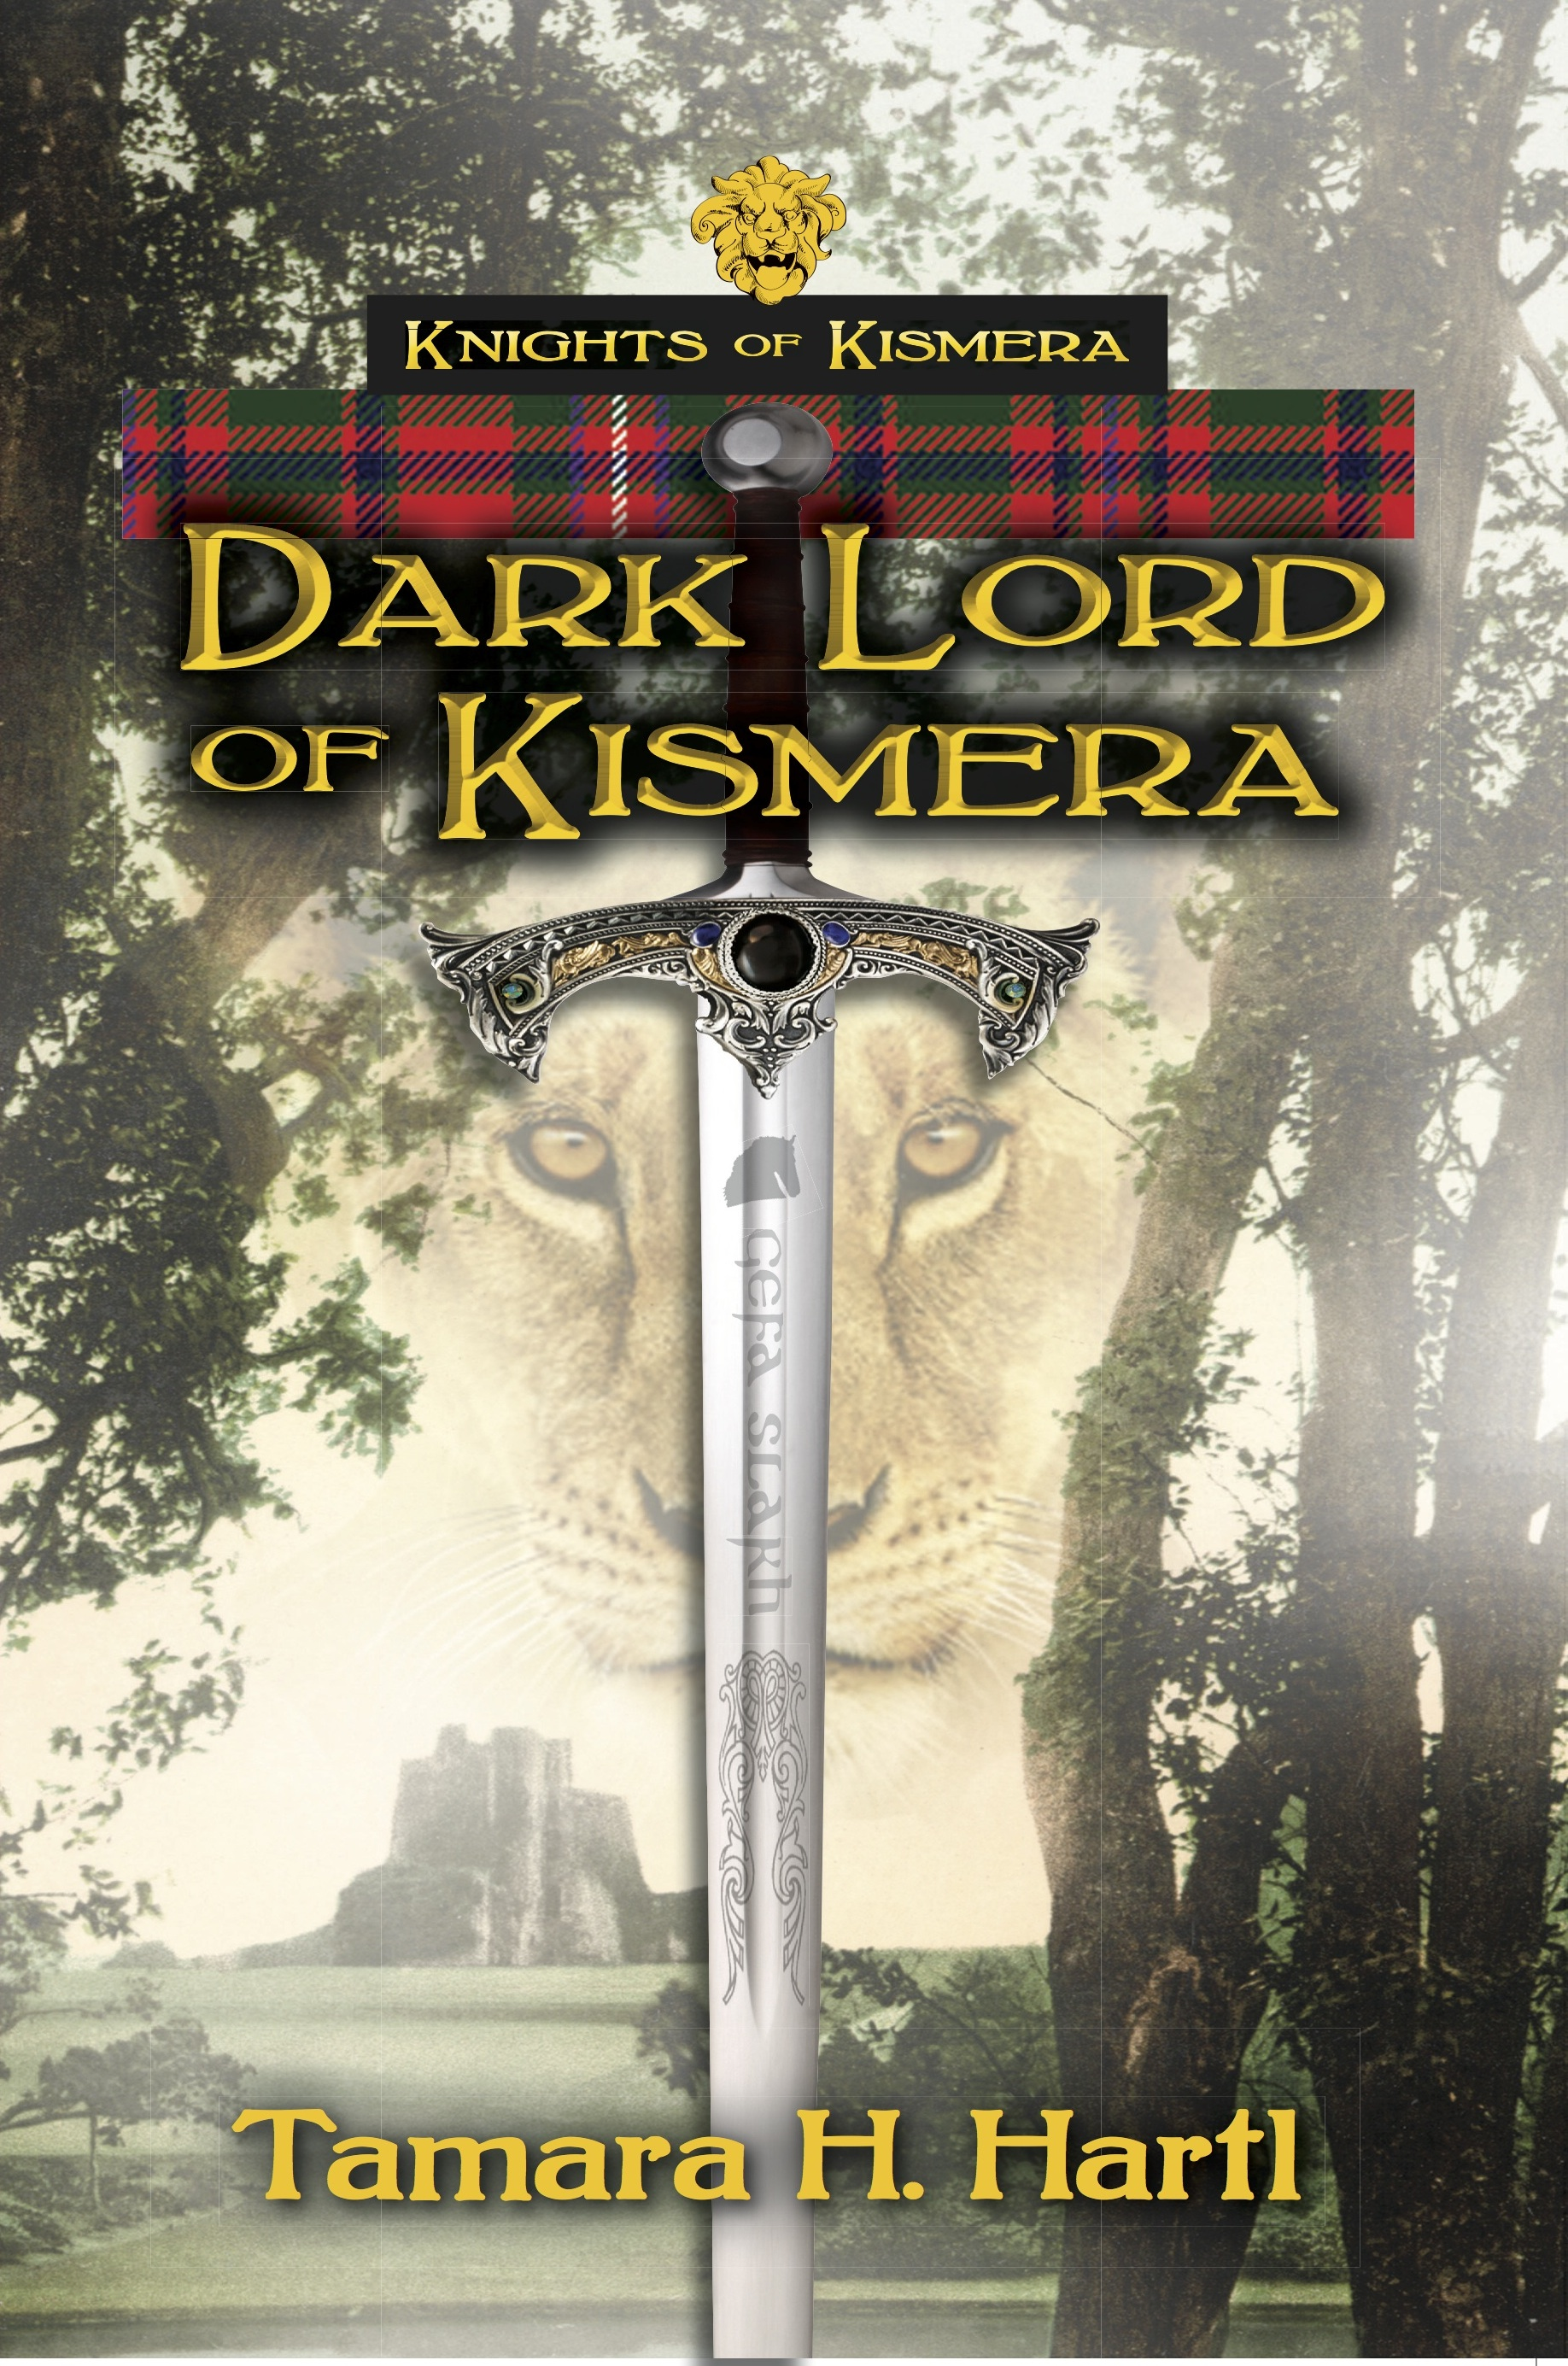 Dark Lord of Kismera by Tamara H. Hartl